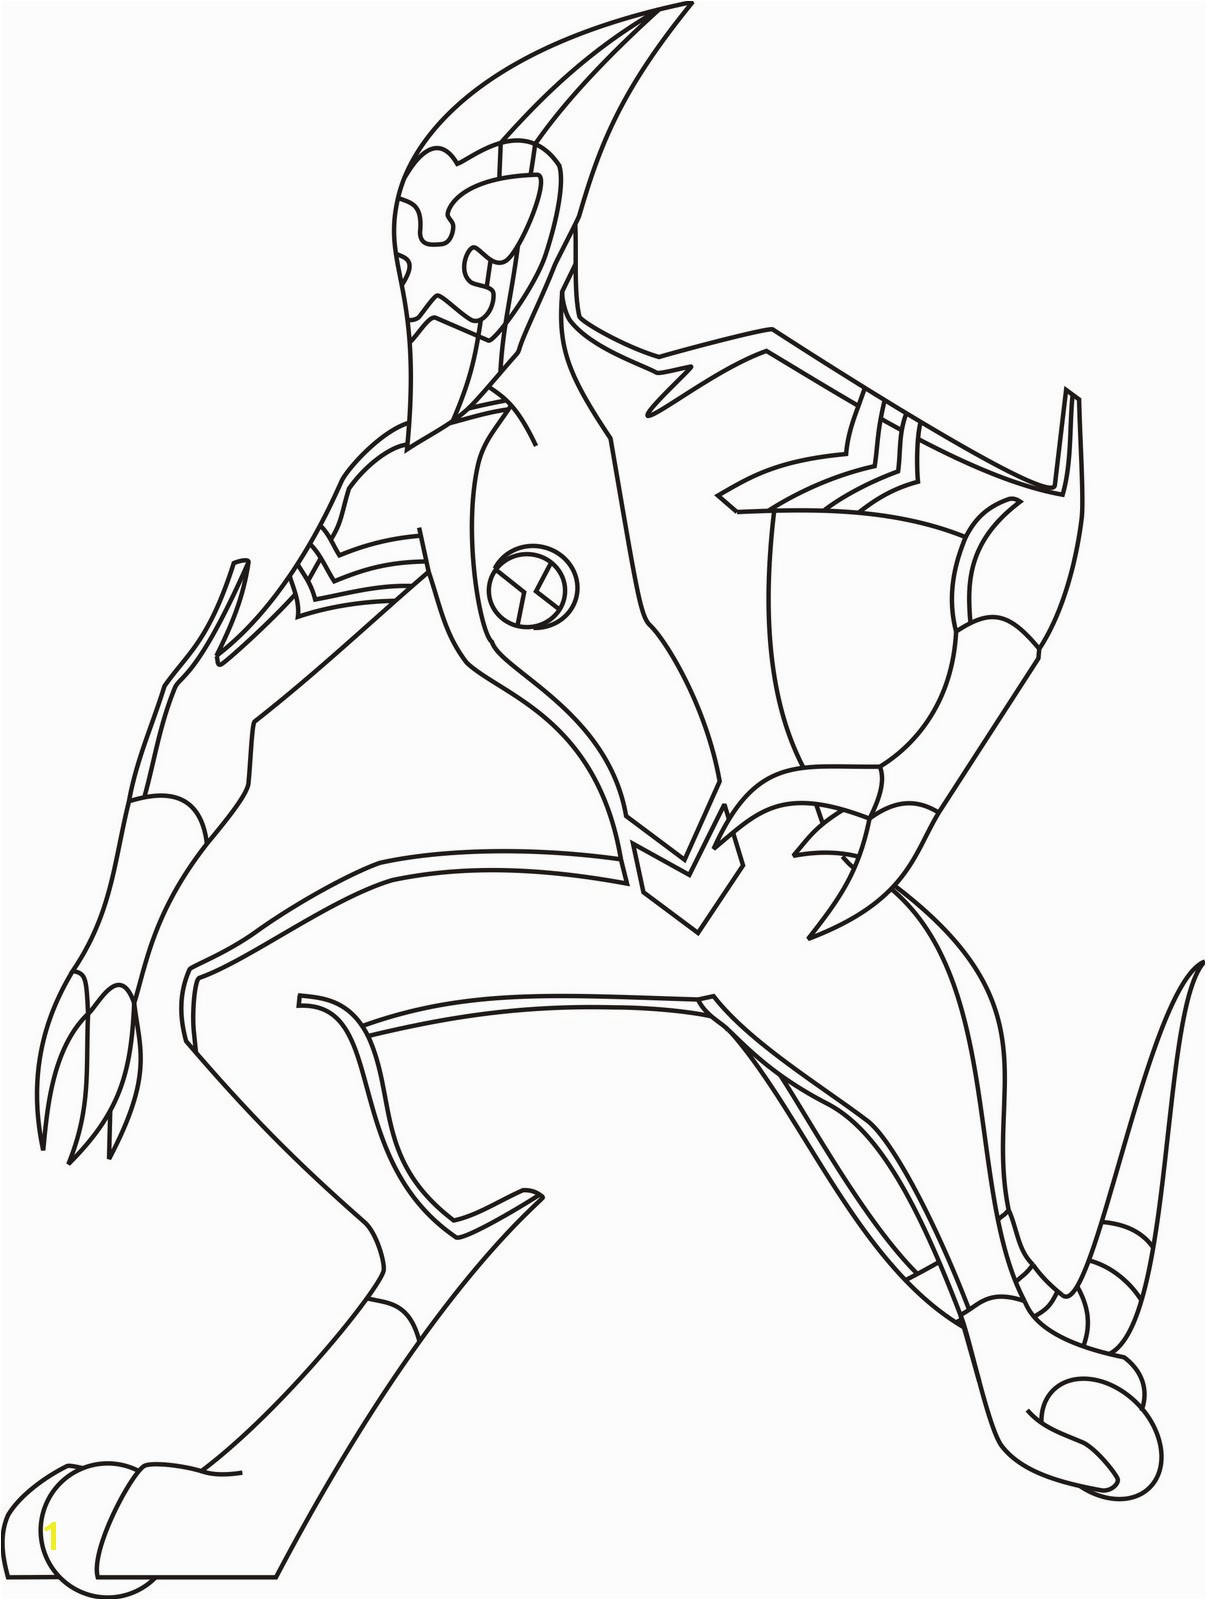 Ben 10 Coloring Pages Upgrade Ben 10 Xlr8 Coloring Pages